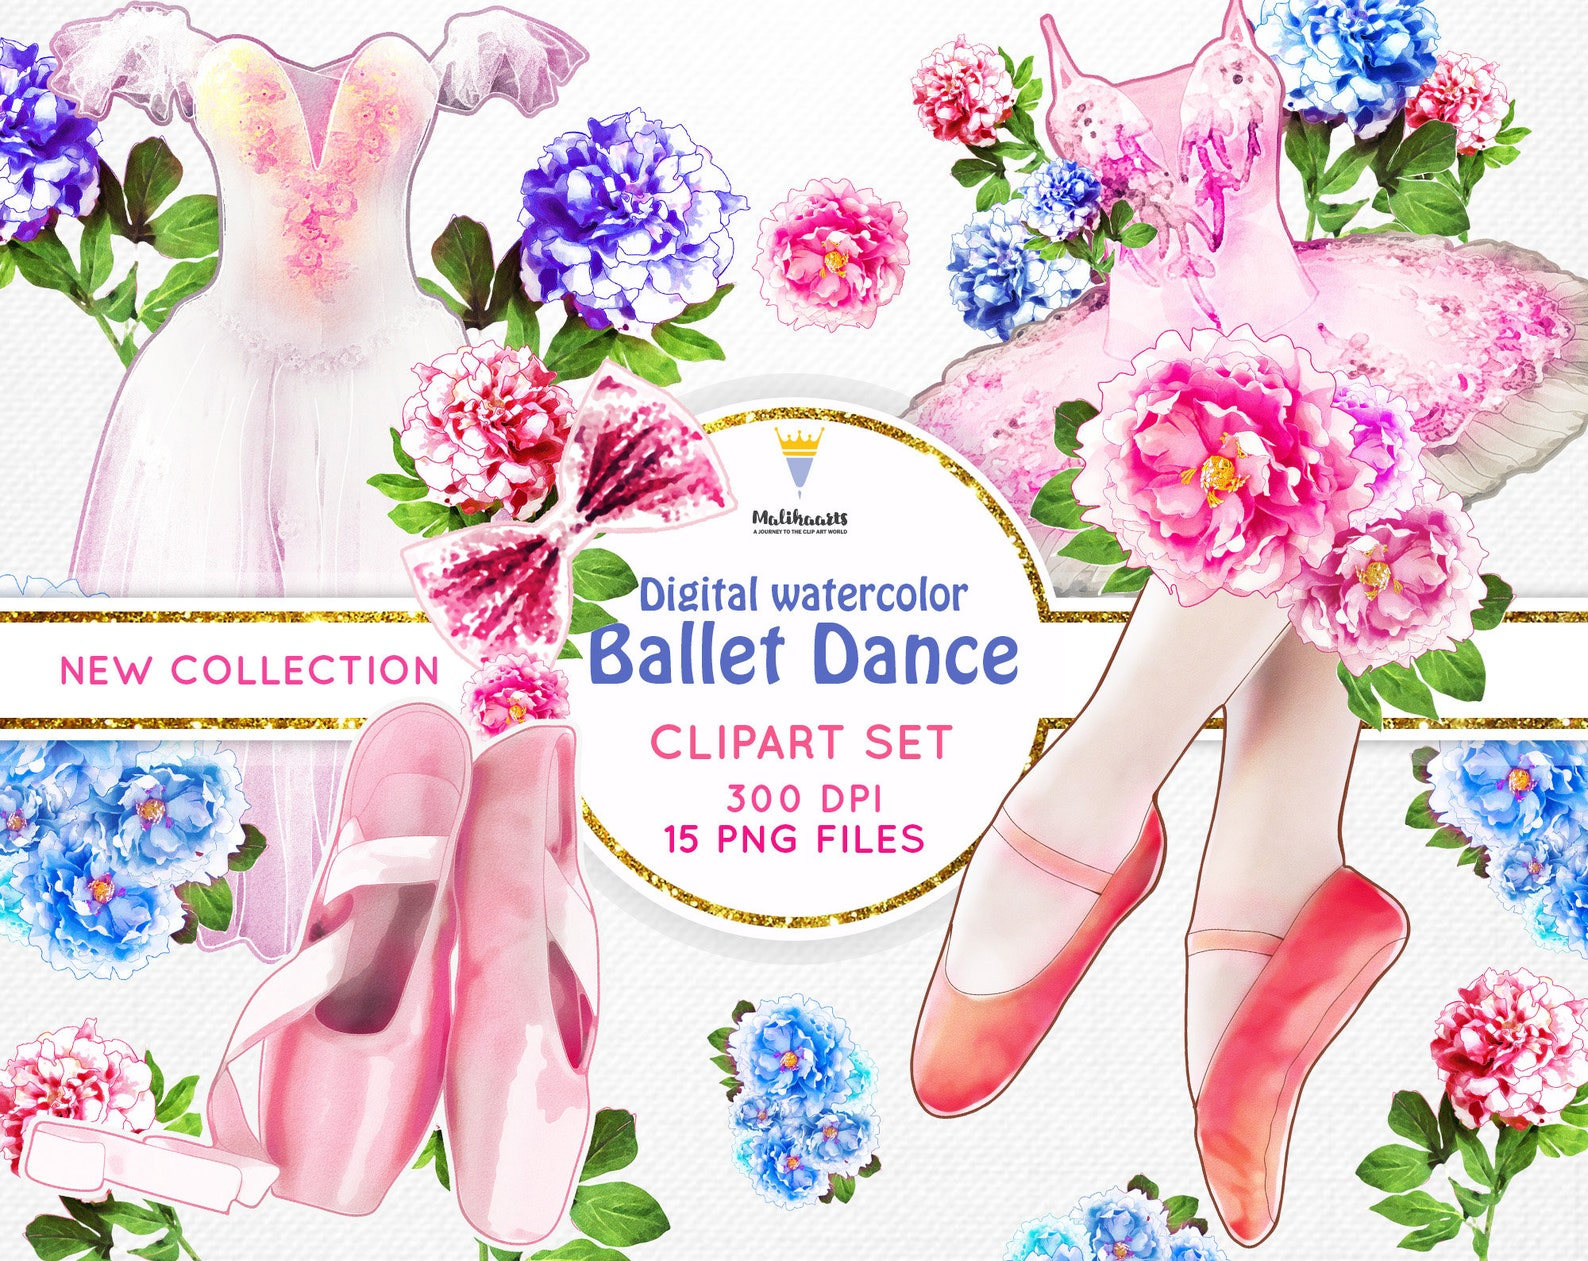 ballerina clipart, ballet clipart, watercolor ballet shoes, tutu dress, bridal shower, wedding invitation, romantic, roses peoni